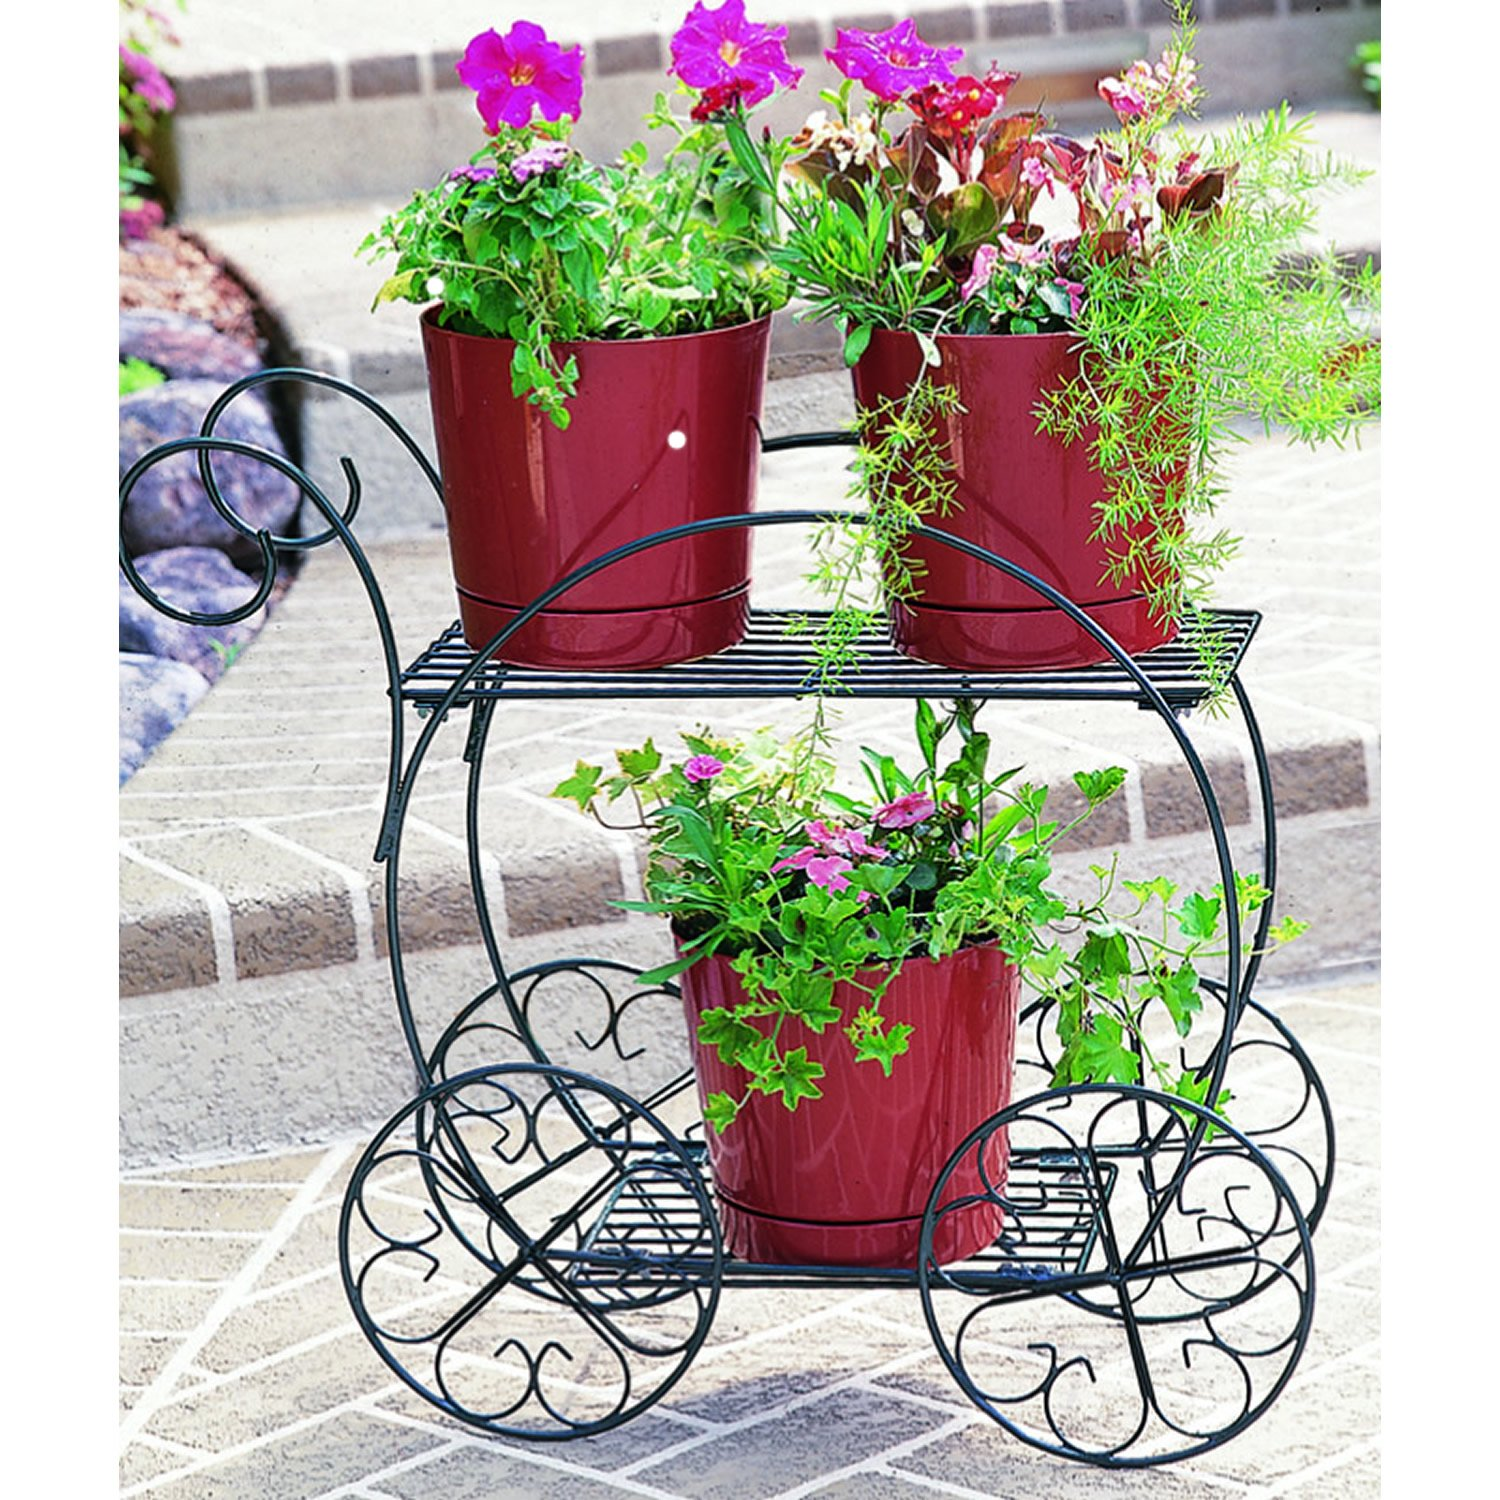 Amazon.com : CobraCo Two Tiered Garden Cart FC100 : Plant Stands ...